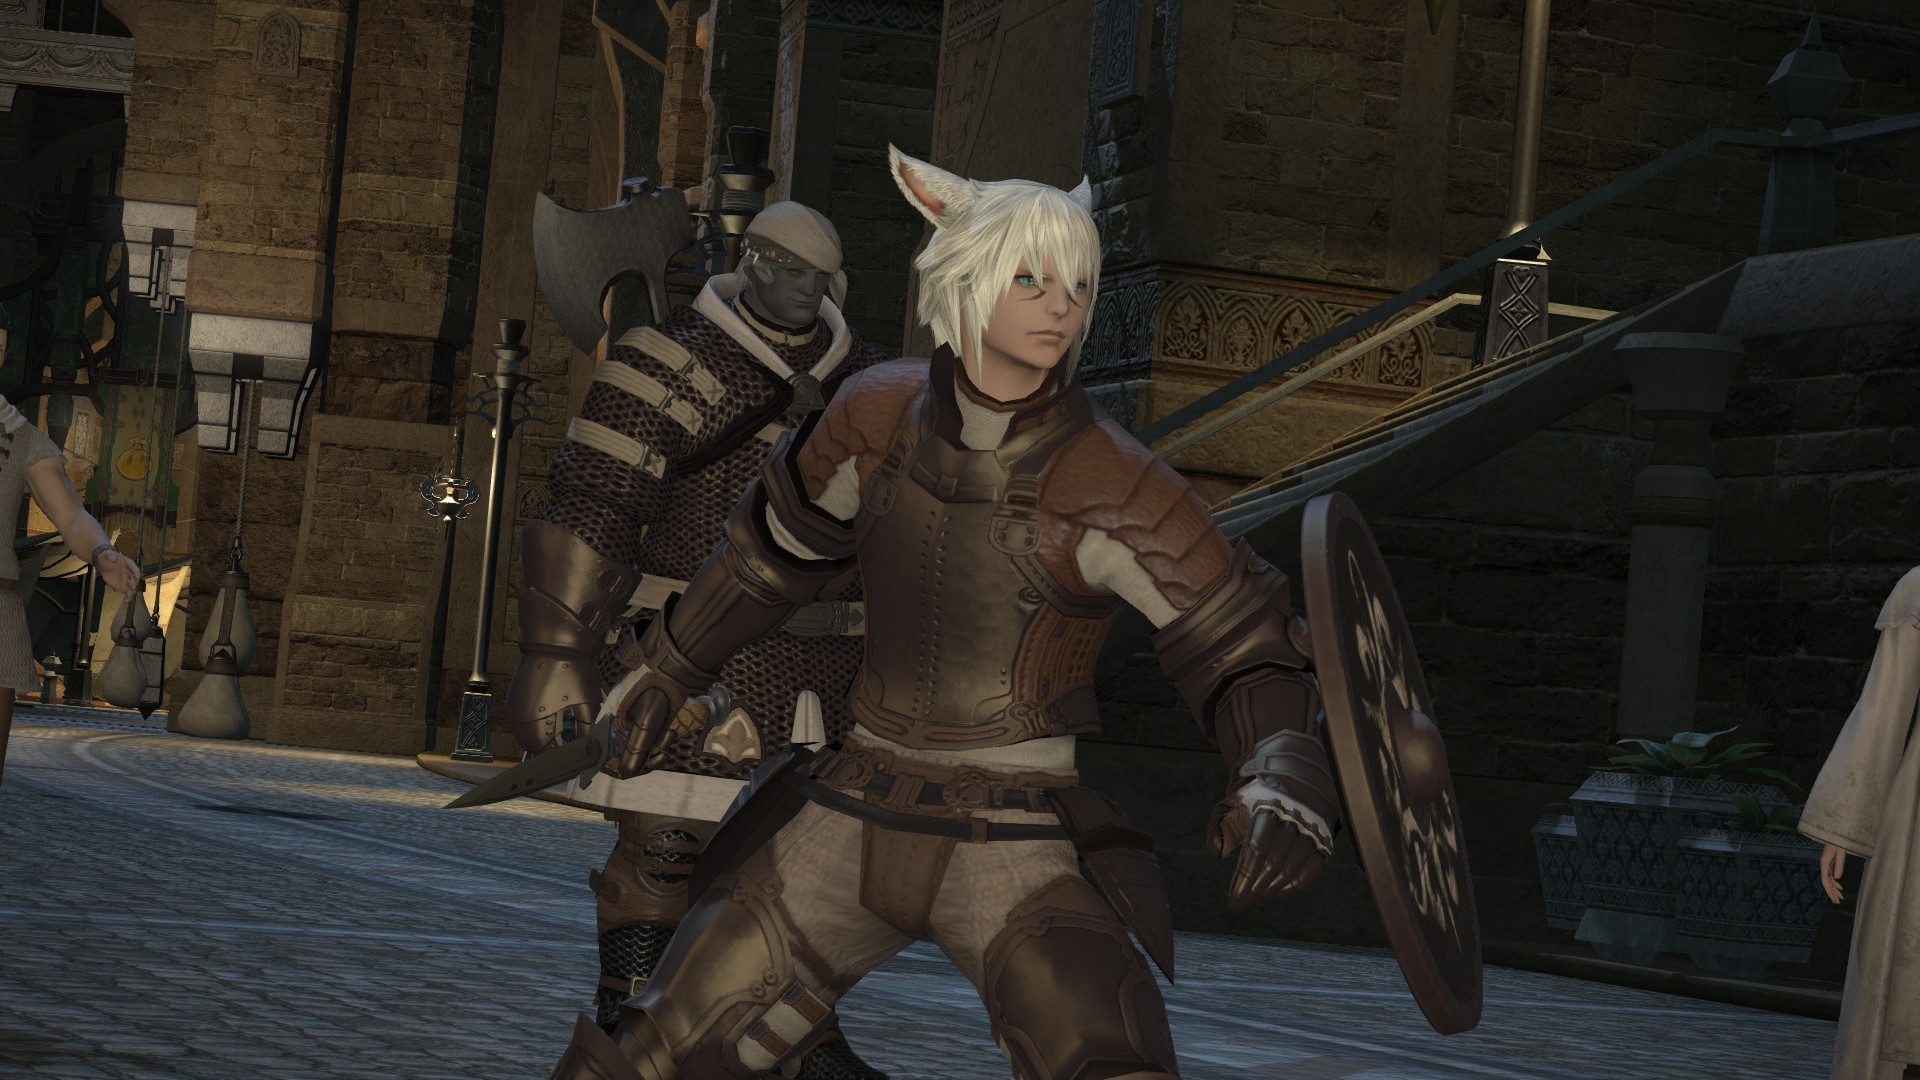 Final Fantasy XIV: A Realm Reborn - That knife looks real intimidating, don't it?